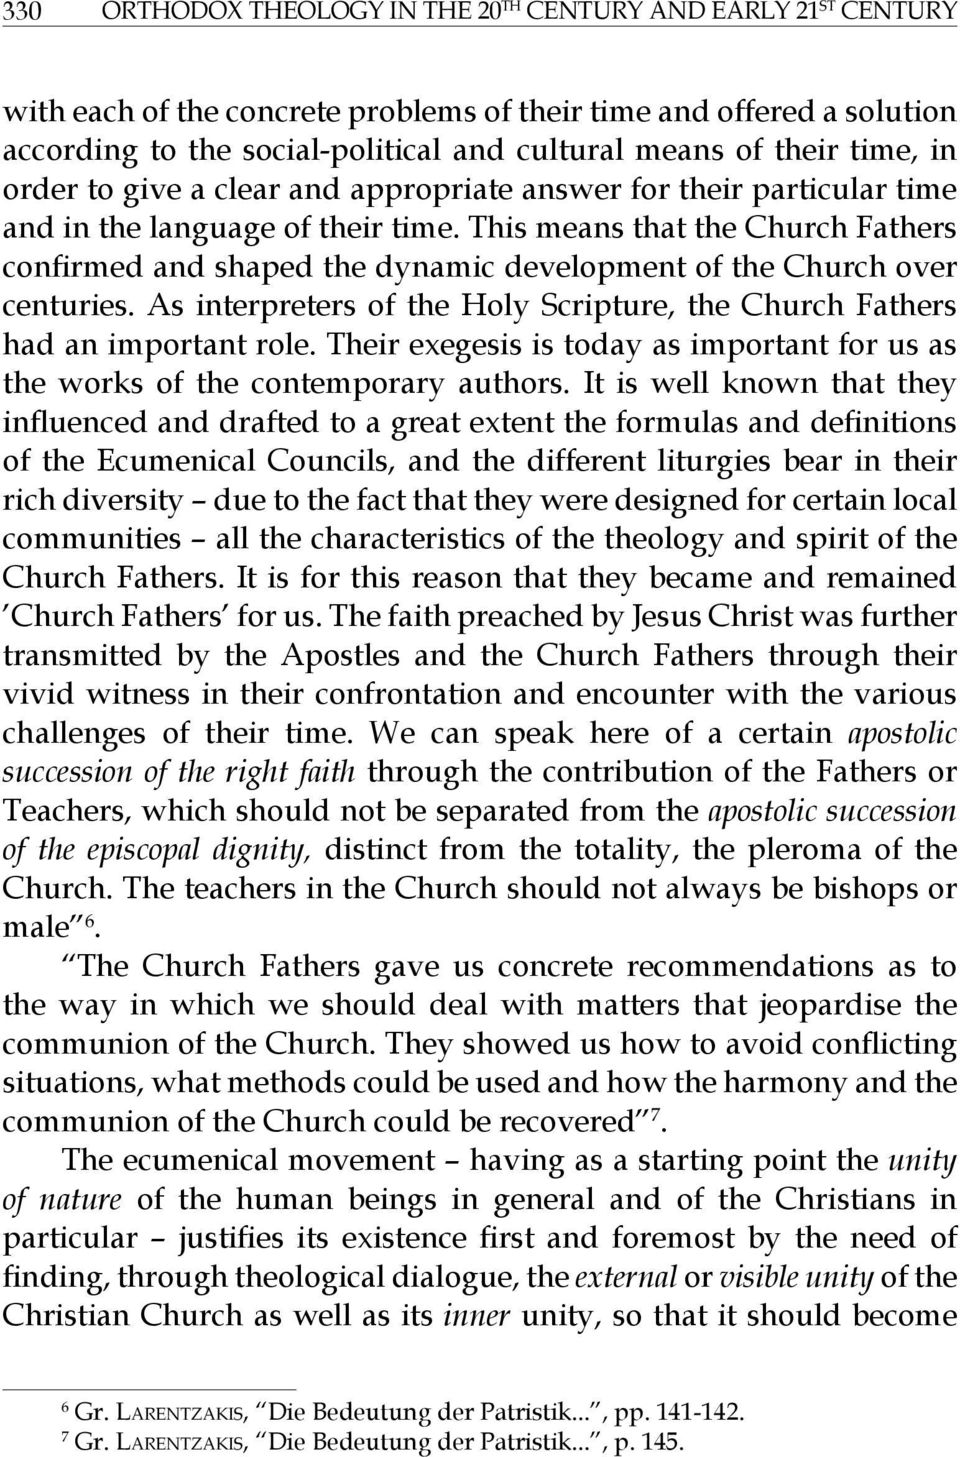 This means that the Church Fathers confirmed and shaped the dynamic development of the Church over centuries. As interpreters of the Holy Scripture, the Church Fathers had an important role.